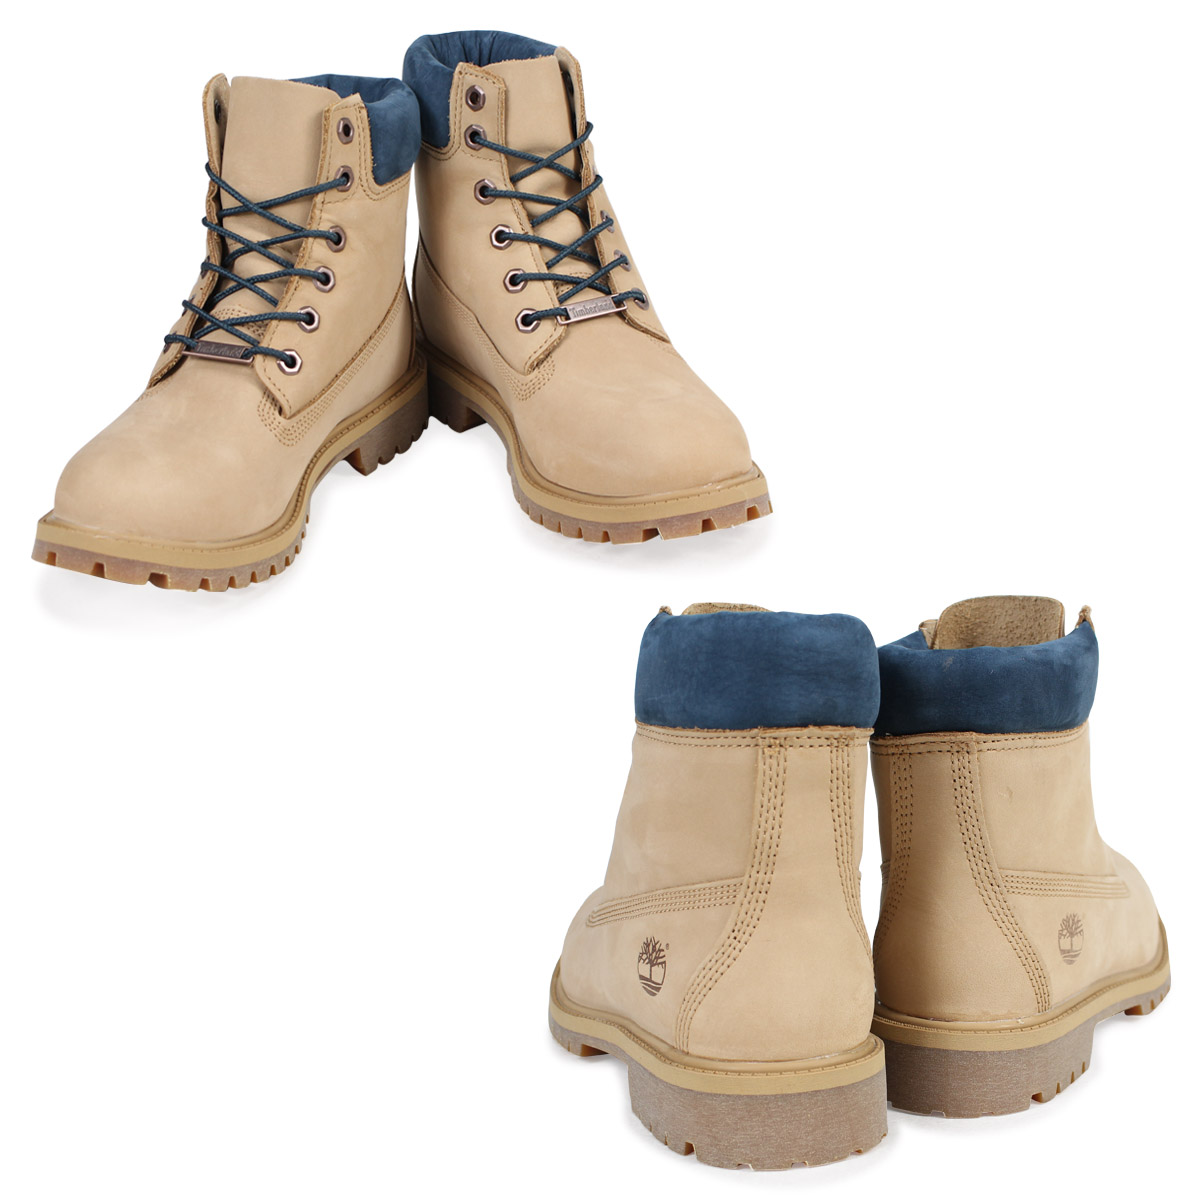 f85ce429747 ... Timberland Lady's boots 6 inches Timberland kids JUNIOR 6INCH  WATERPROOF BOOT A1PLO W Wise waterproofing is ...